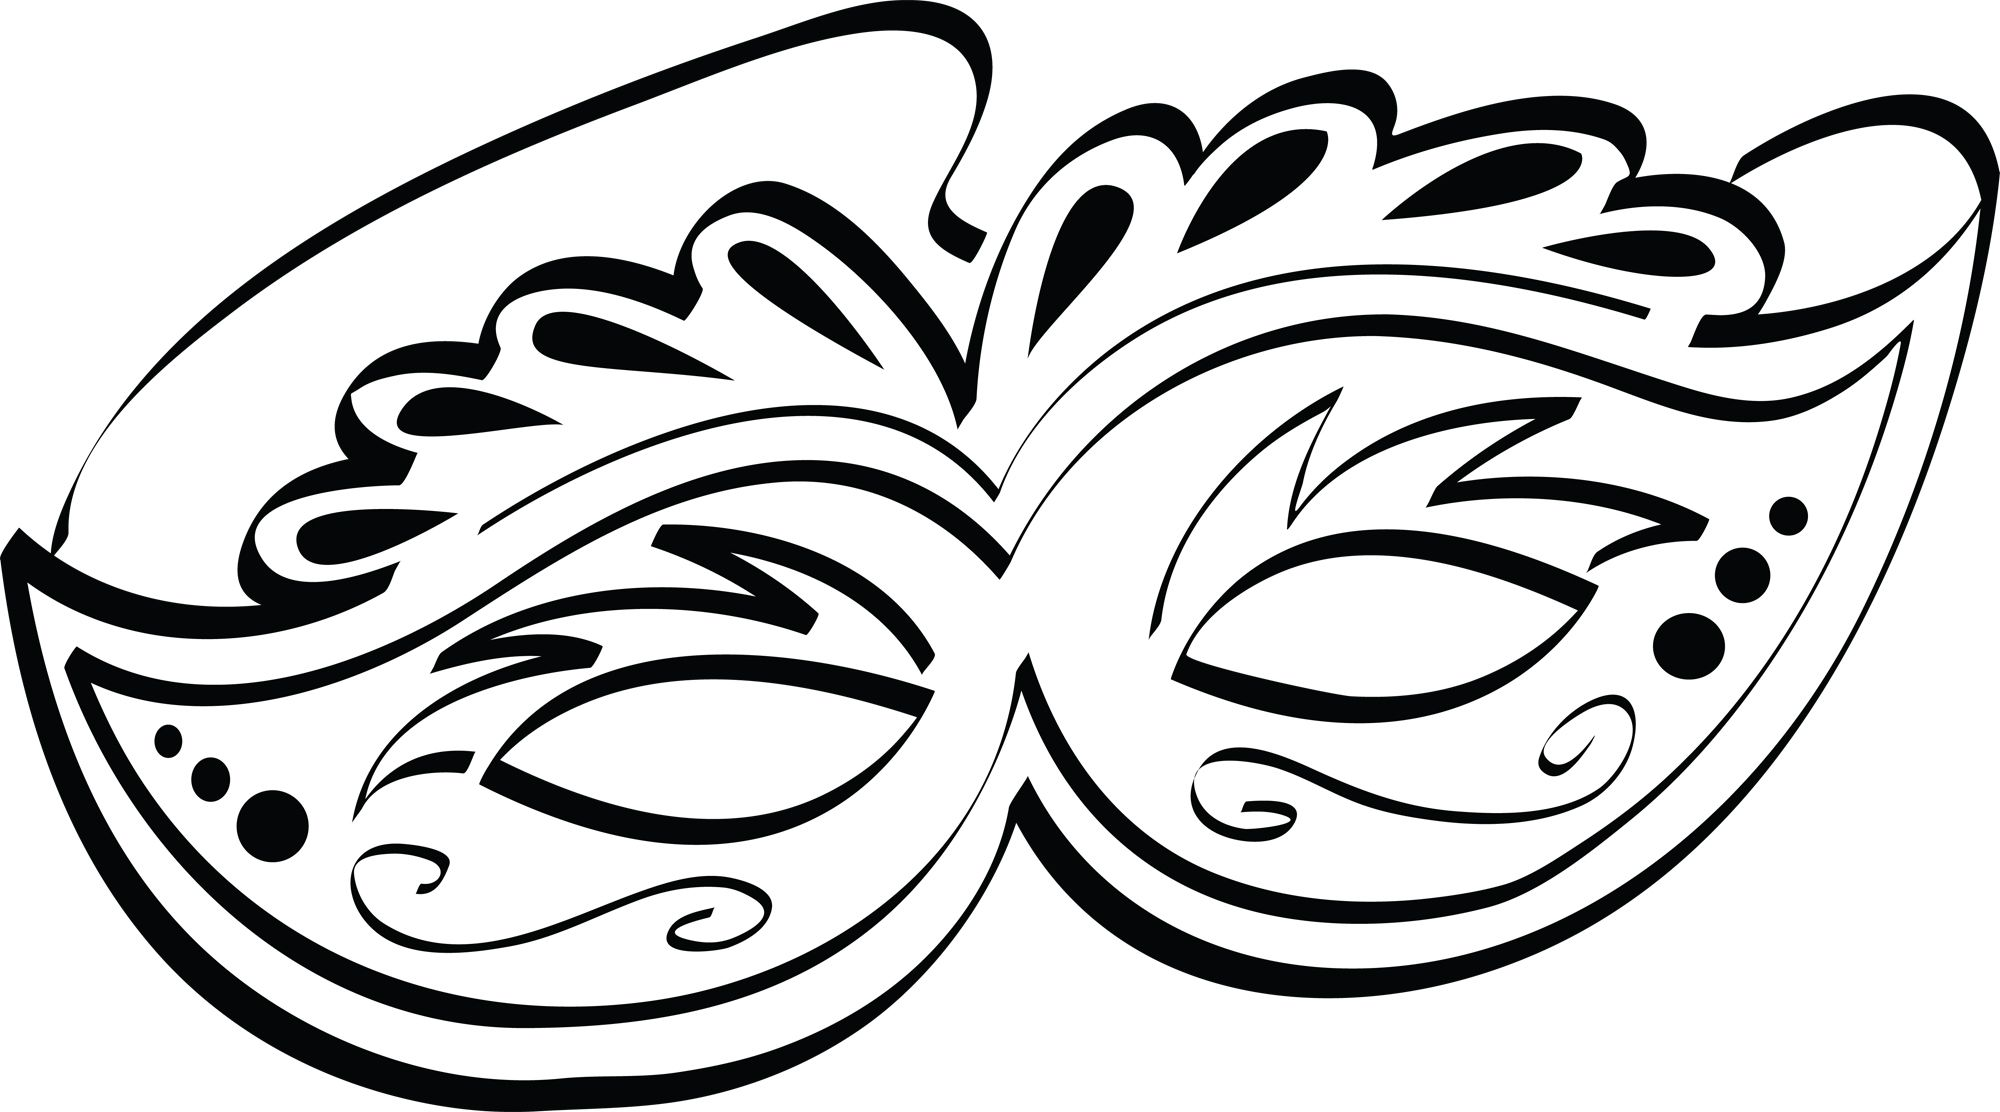 Mardi gras mask black and white clipart